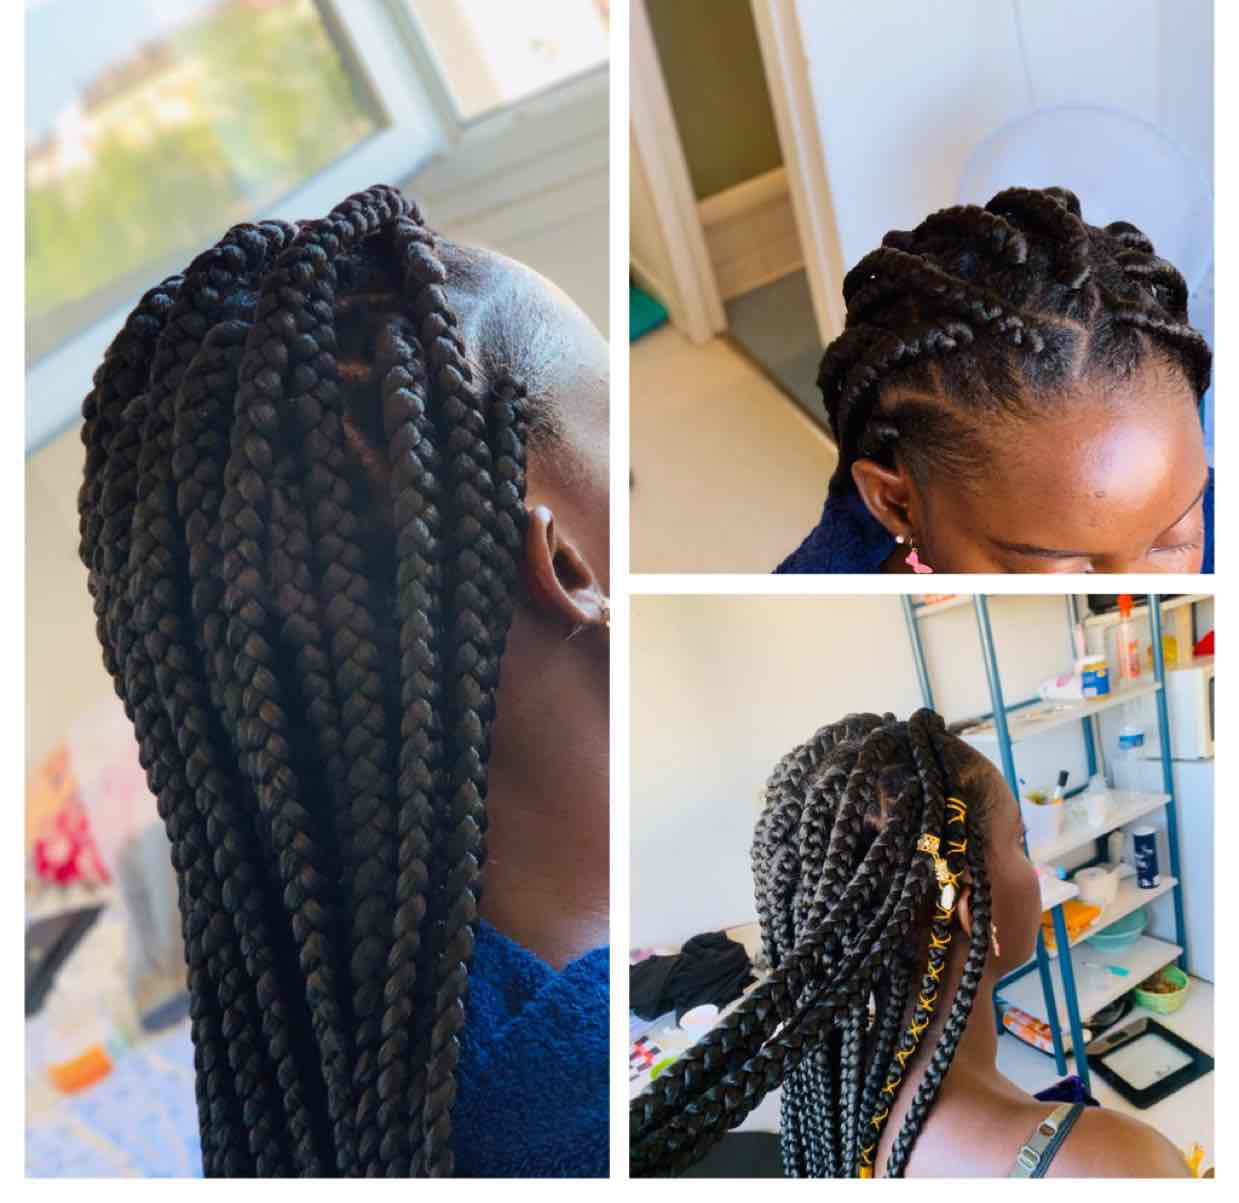 salon de coiffure afro tresse tresses box braids crochet braids vanilles tissages paris 75 77 78 91 92 93 94 95 AEVQUJAX